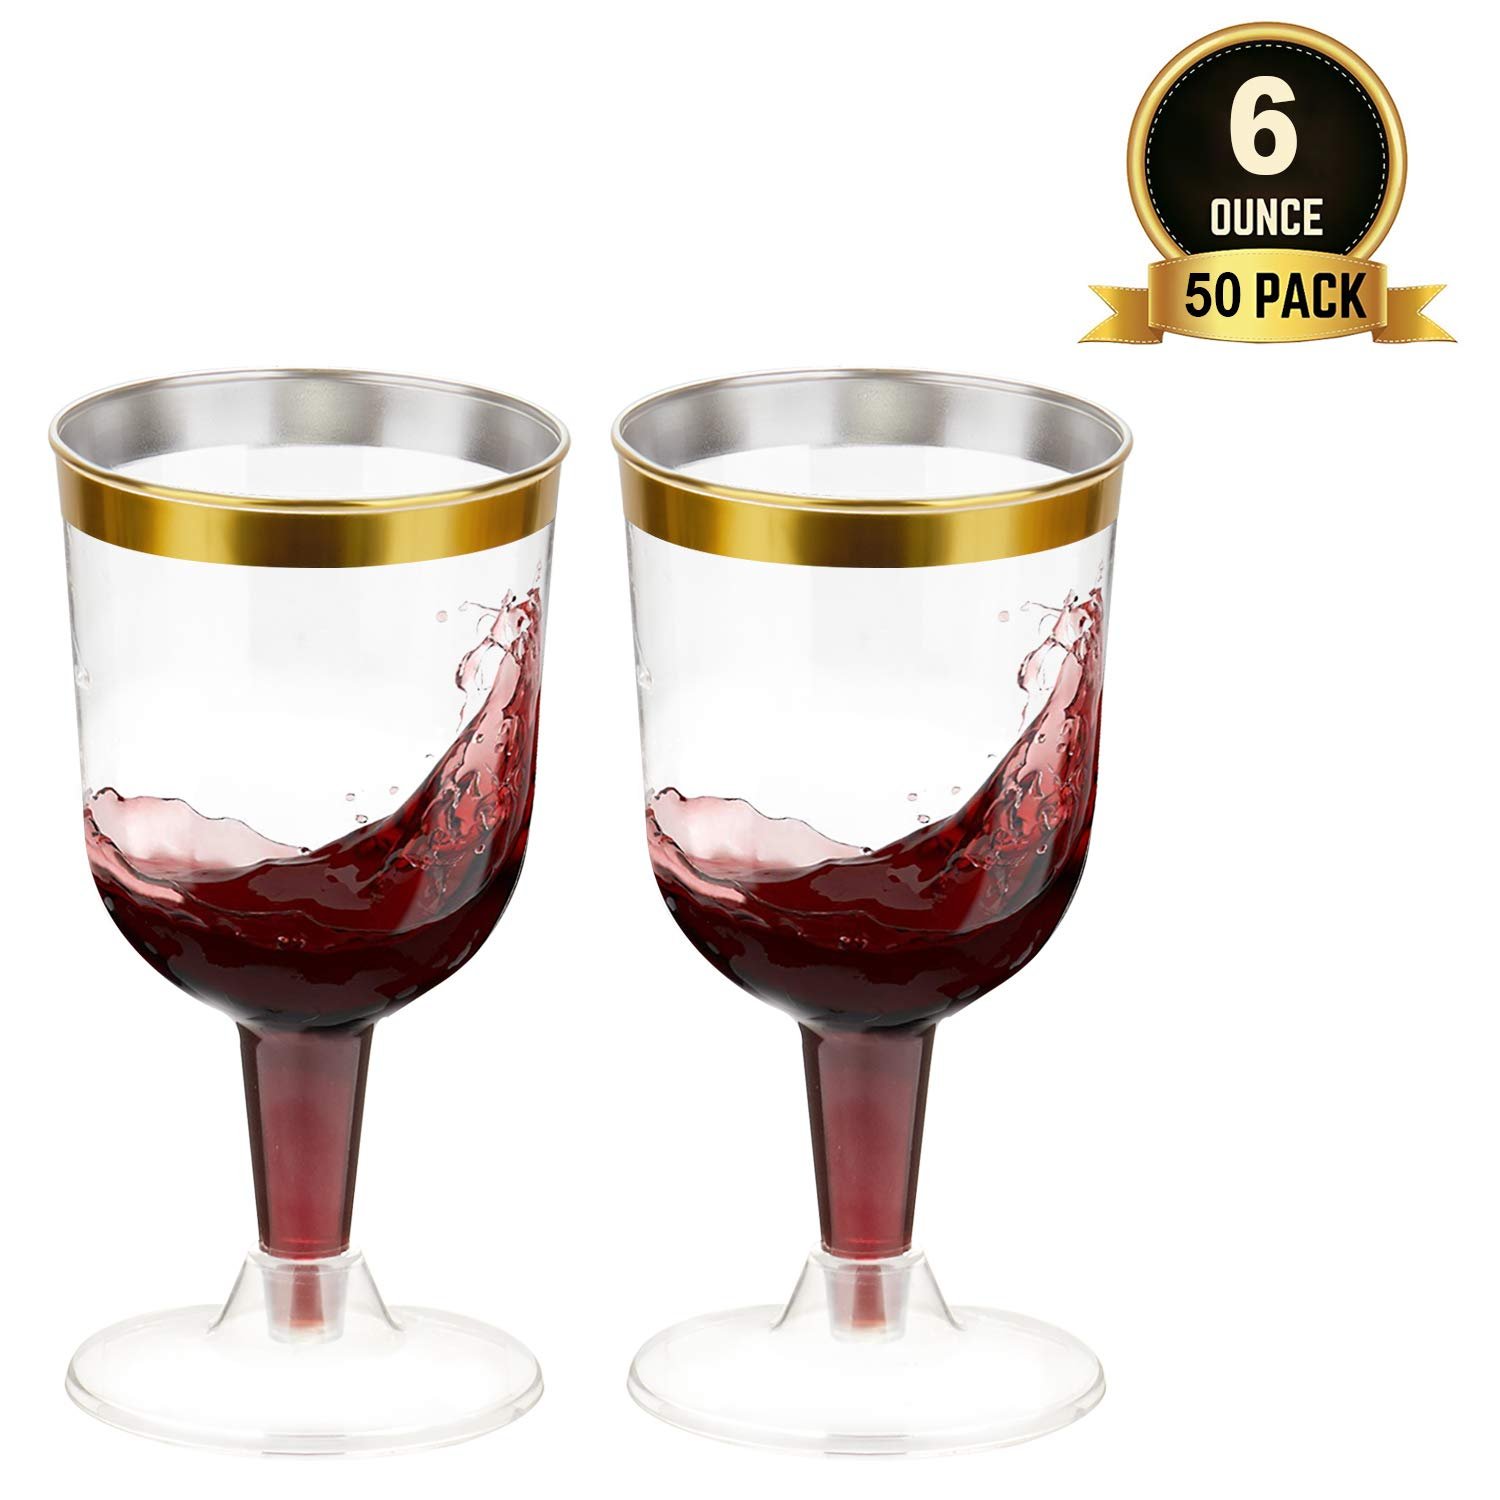 TOROTON 50 Plastic Wine Glasses, 6oz Gold Rimmed Disposable Wine Glasses for Wedding Party by TOROTON